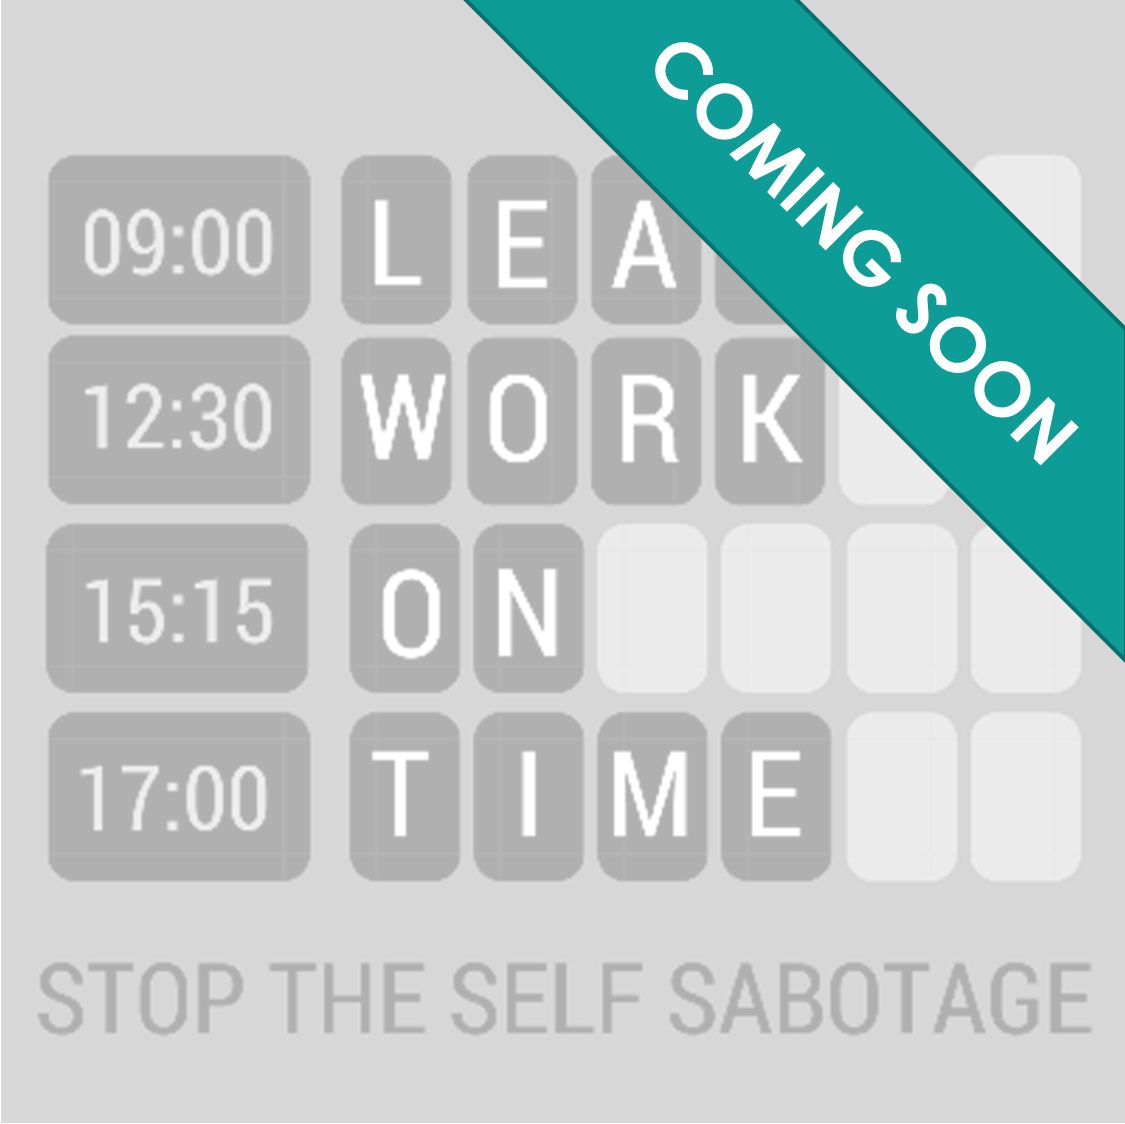 STOP THE SELF SABOTAGE